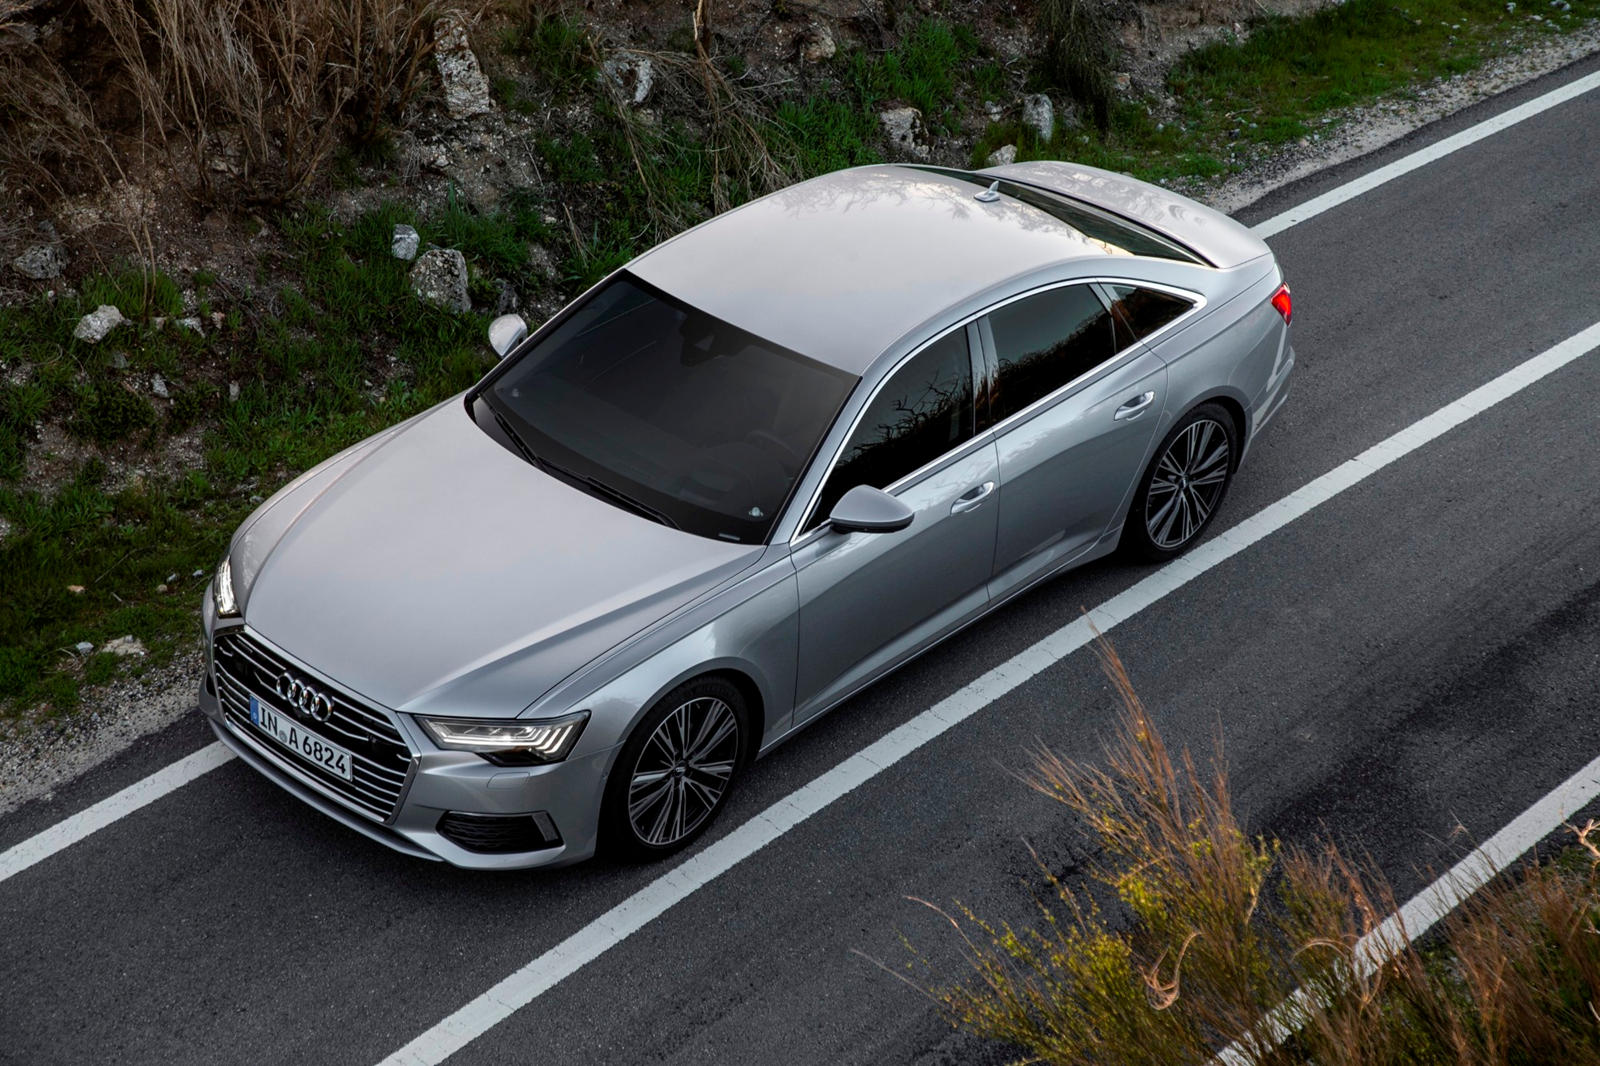 Audi A6 when viewed from the Top